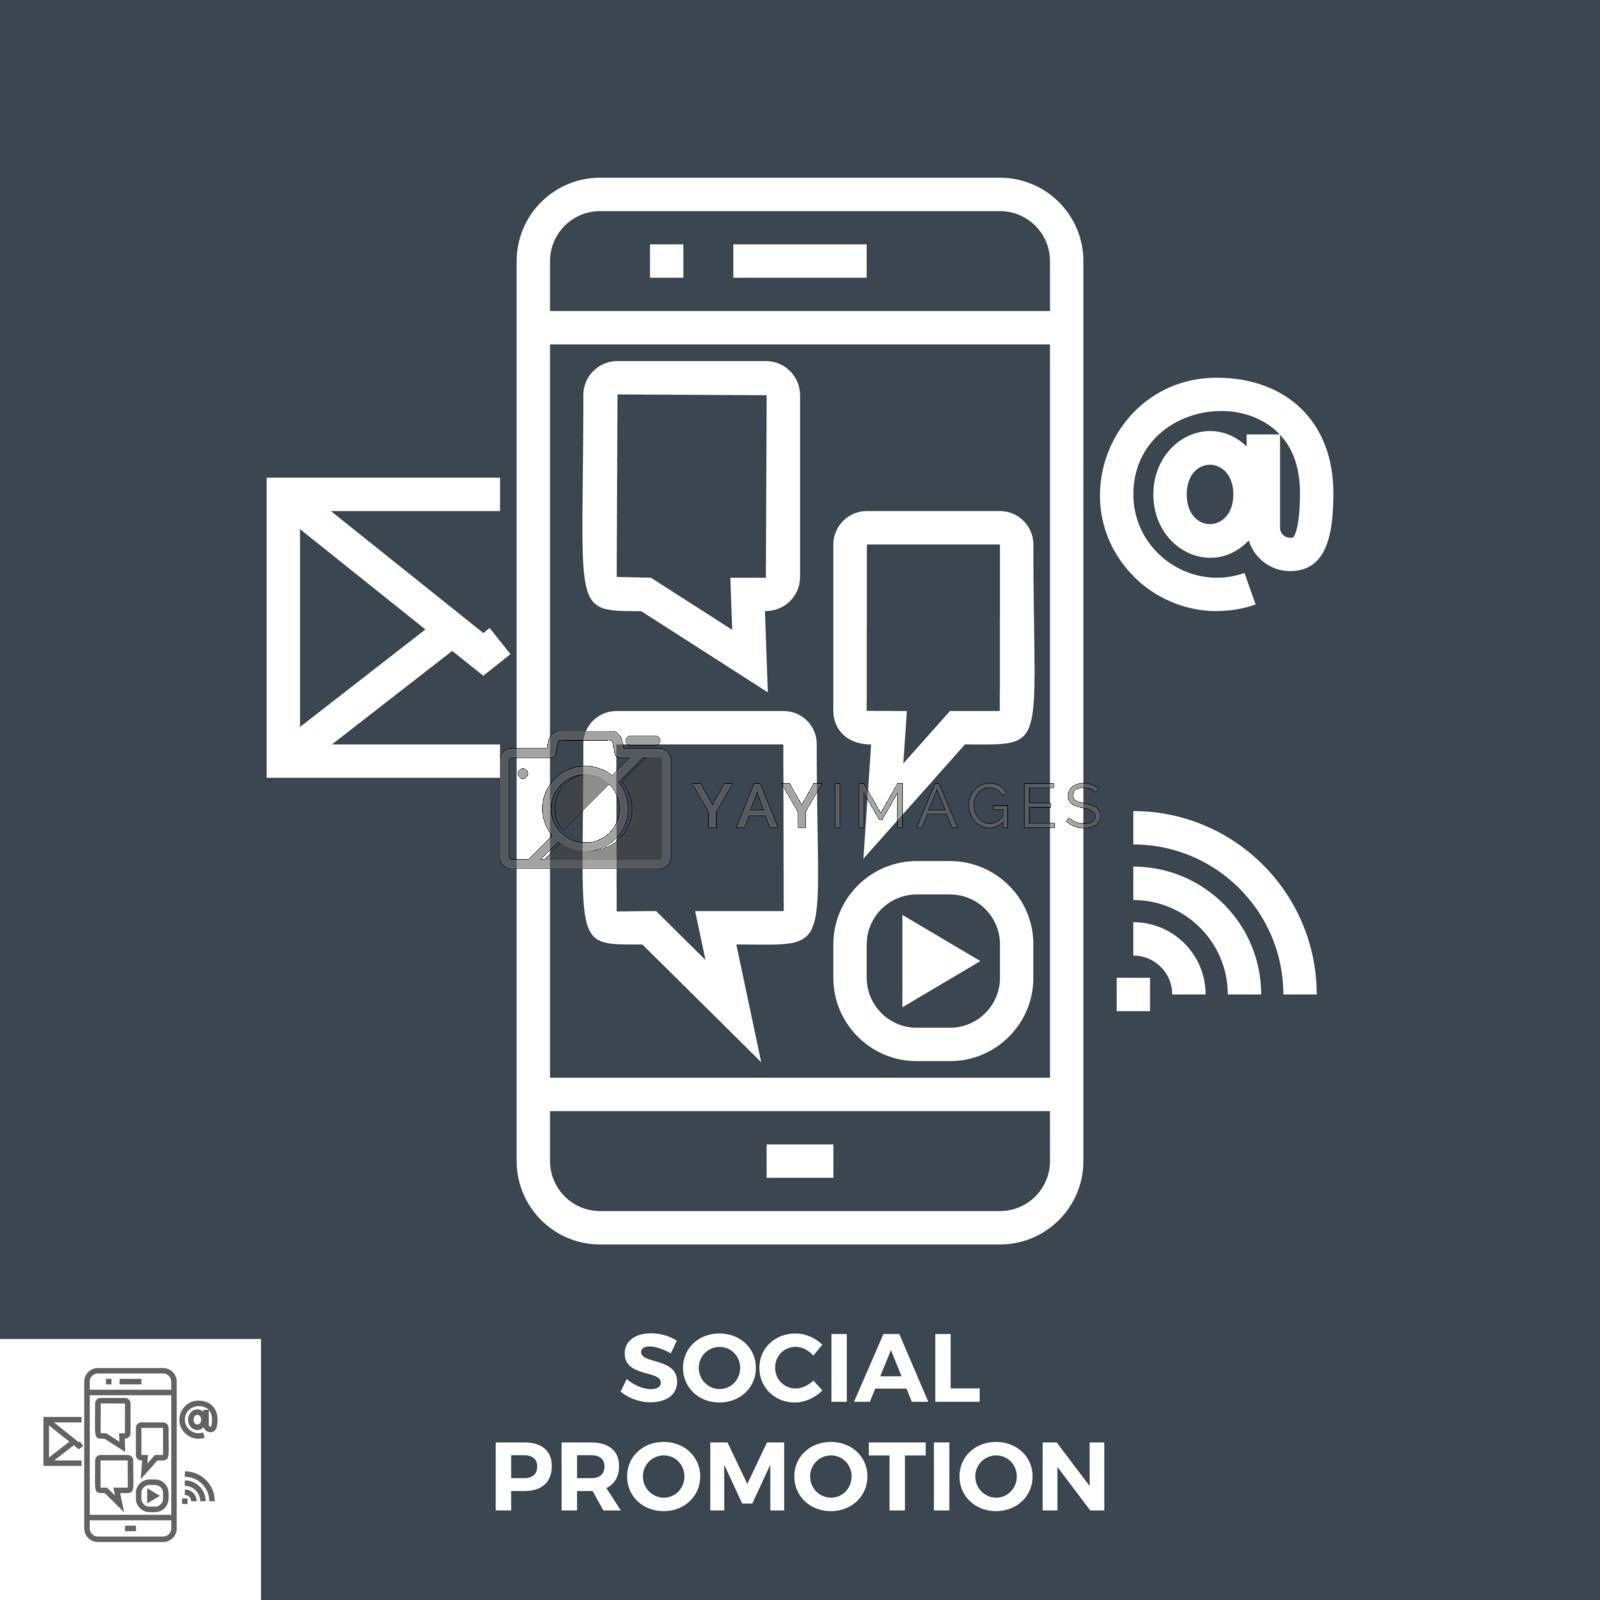 Social Promotion Thin Line Vector Icon Isolated on the Black Background.